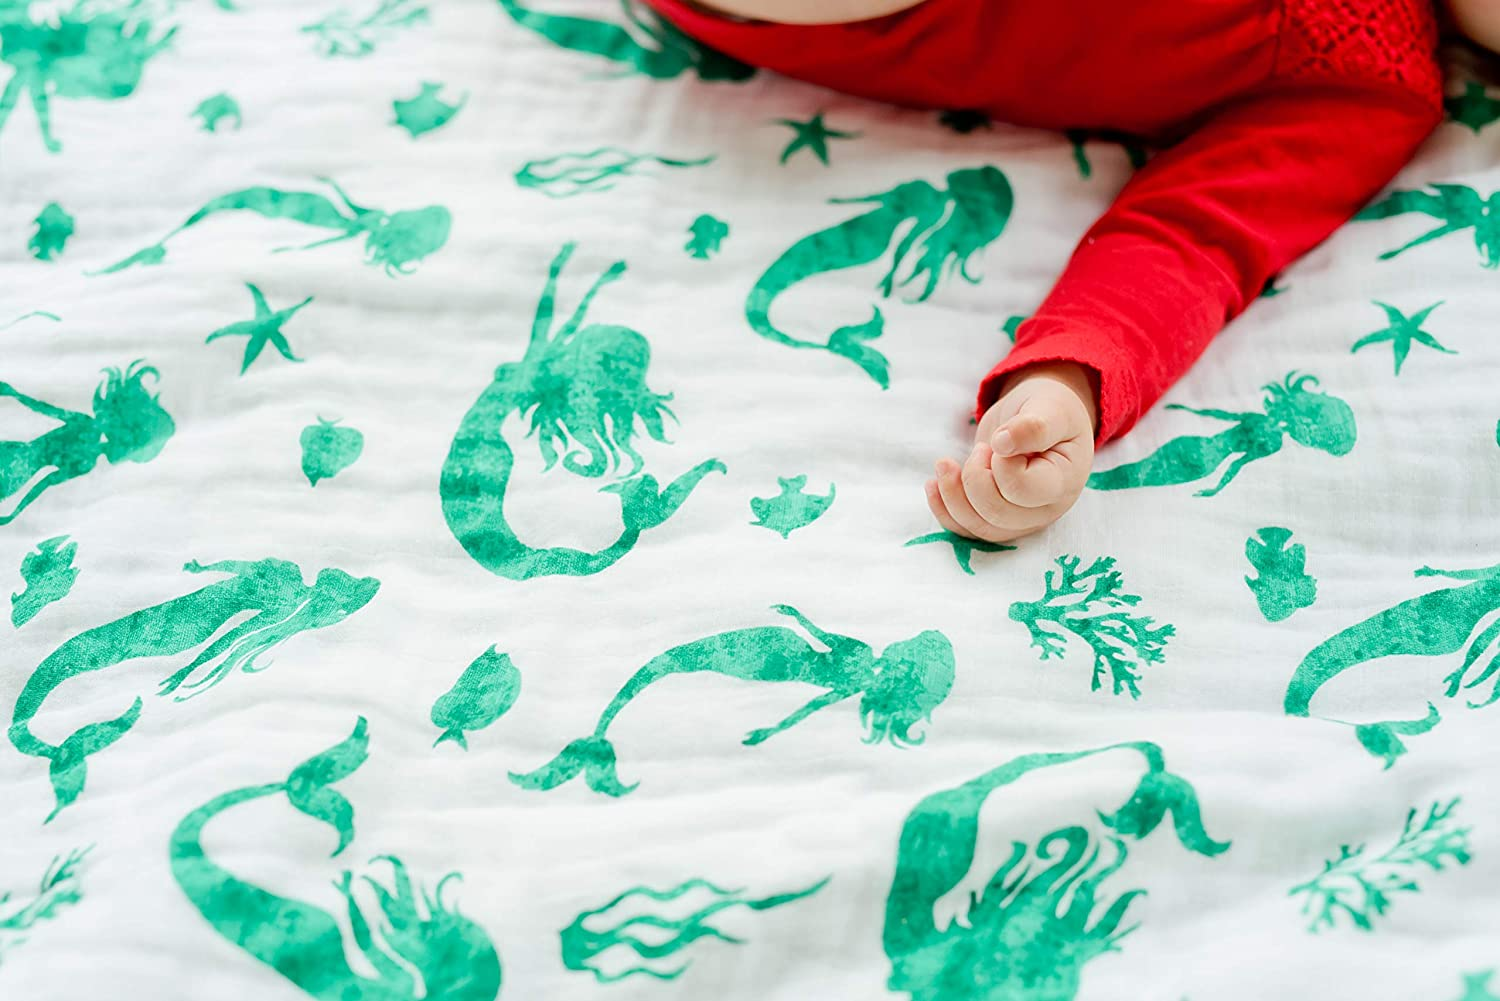 Cactus Print Best Baby//Toddler Gift ADDISON BELLE 100/% Organic Muslin Everything Blanket Oversized 47 inches x 47 inches Premium 4 Layer Muslin Blanket//Dream Blanket